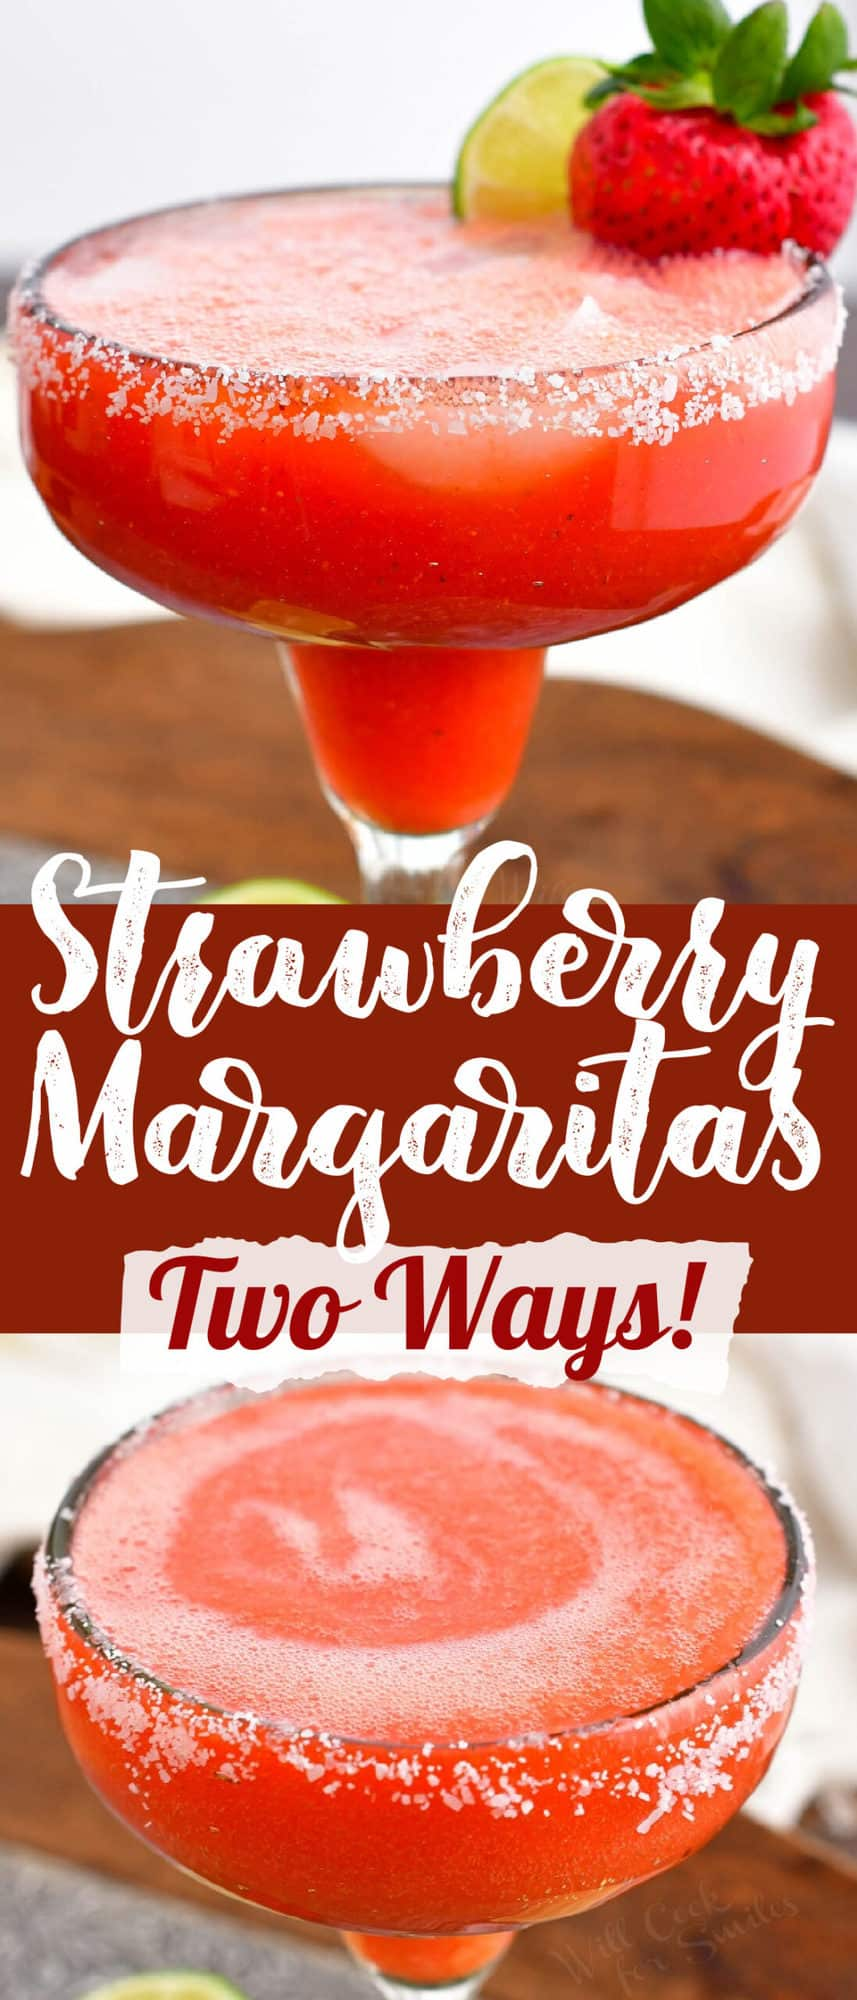 title collage with two images of frozen strawberry margarita in a glass with salted rim